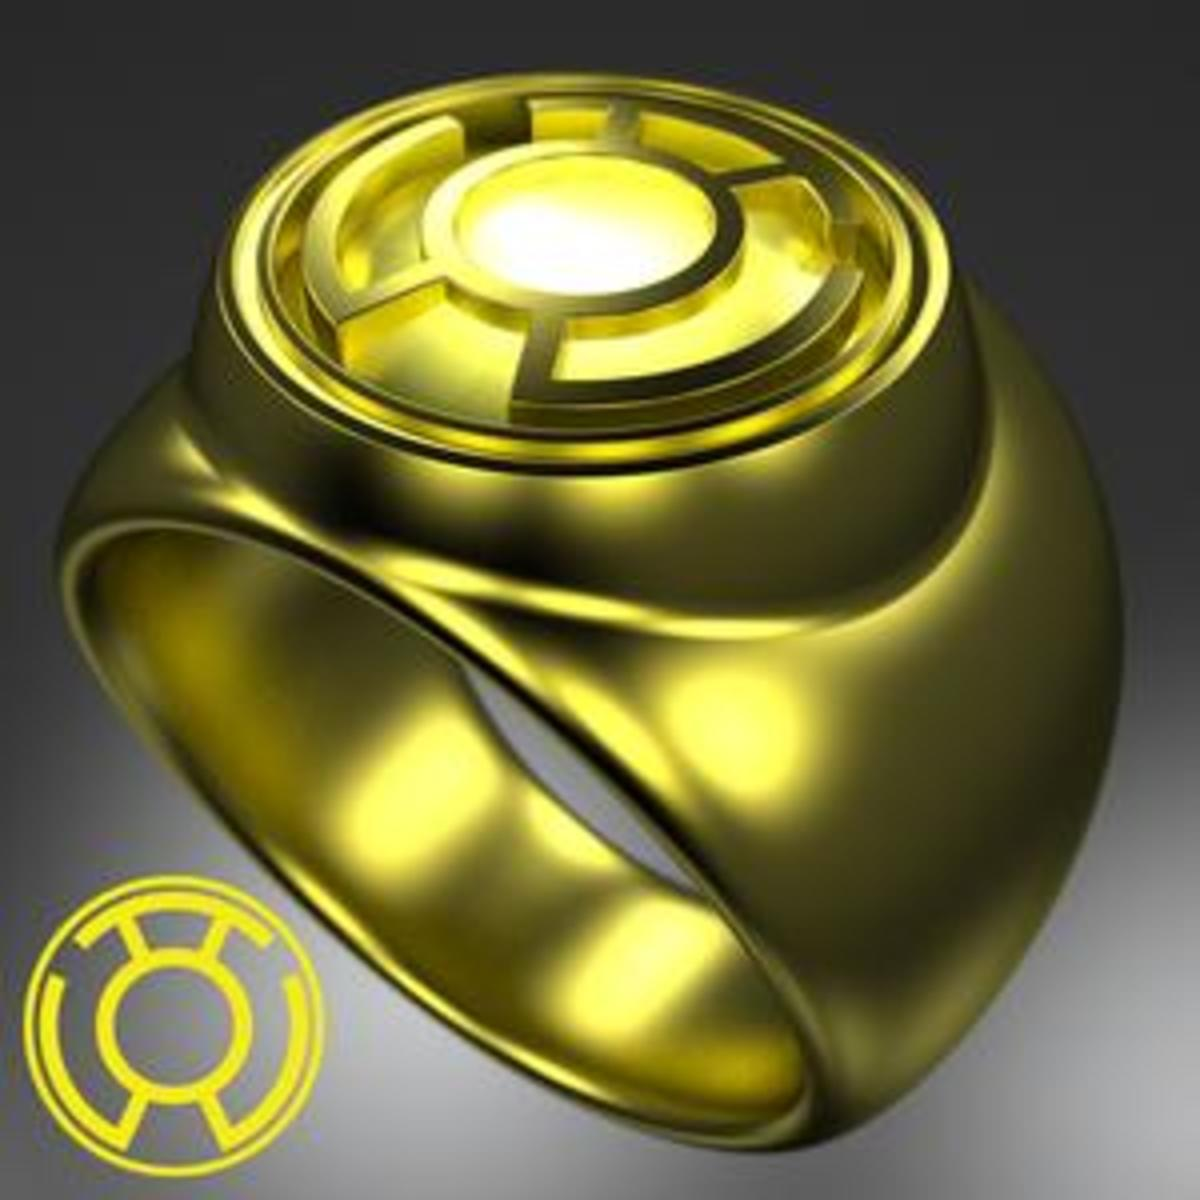 Green Lantern Corps Power Rings | LetterPile